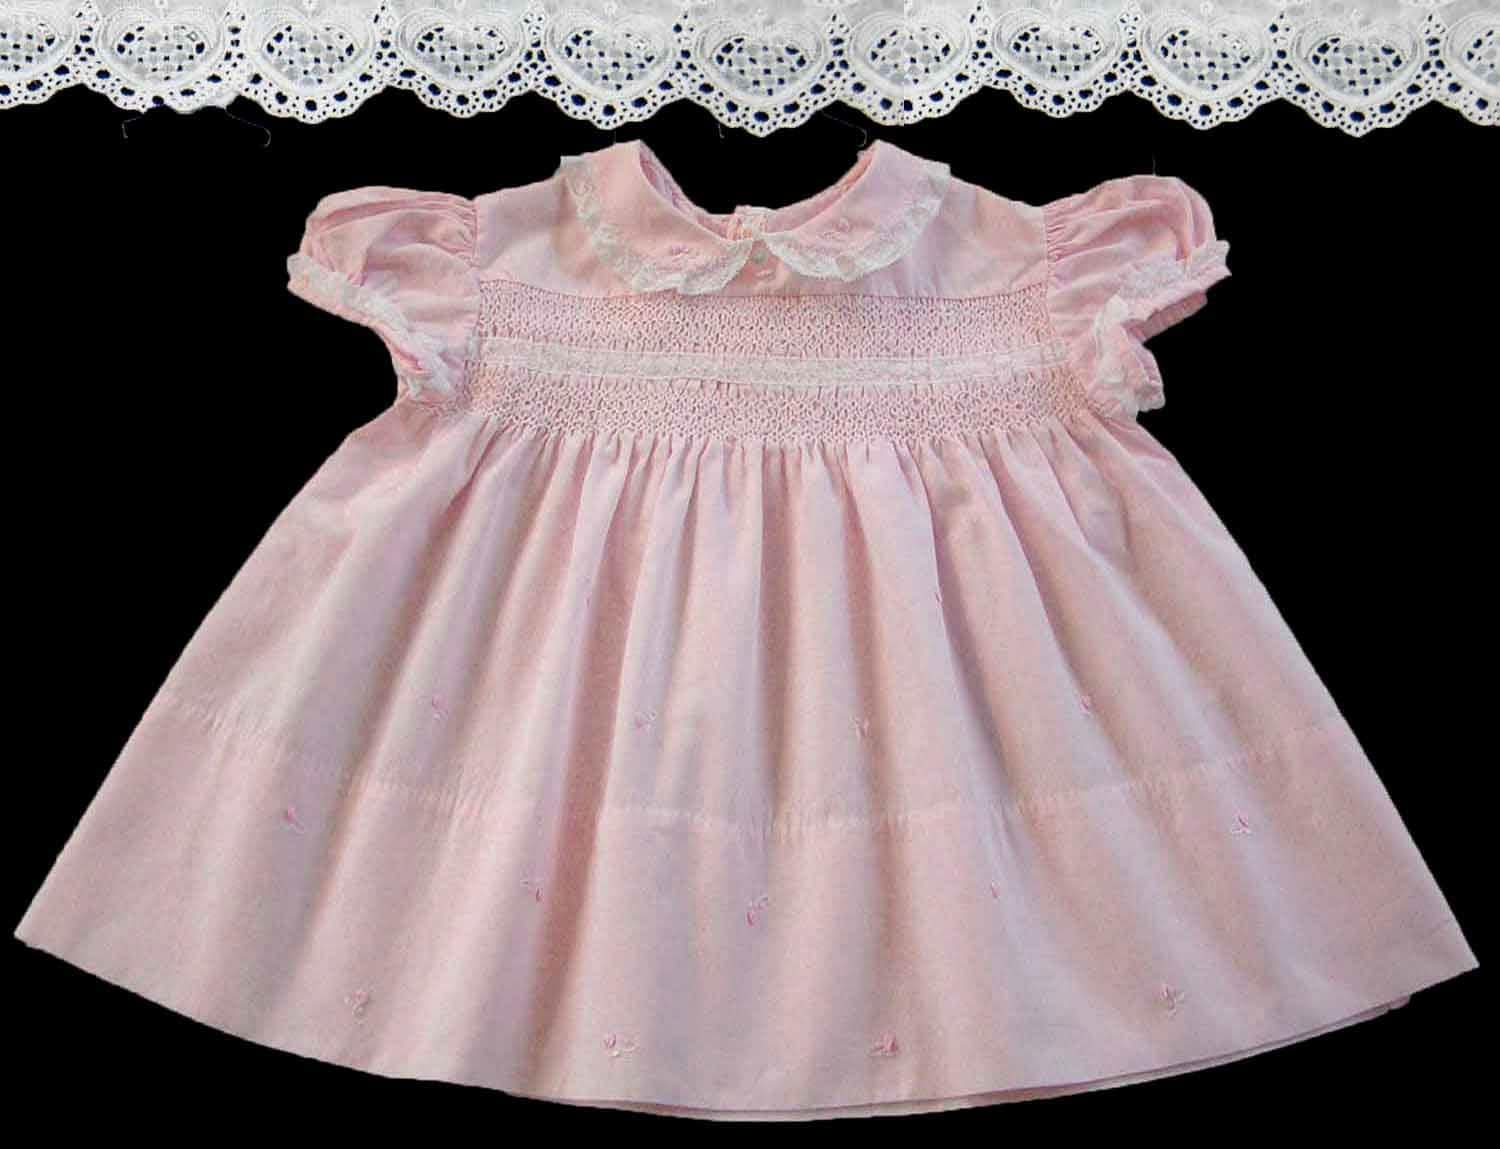 Vintage Baby Clothes Girls Pink Dress Smocked Embroidered